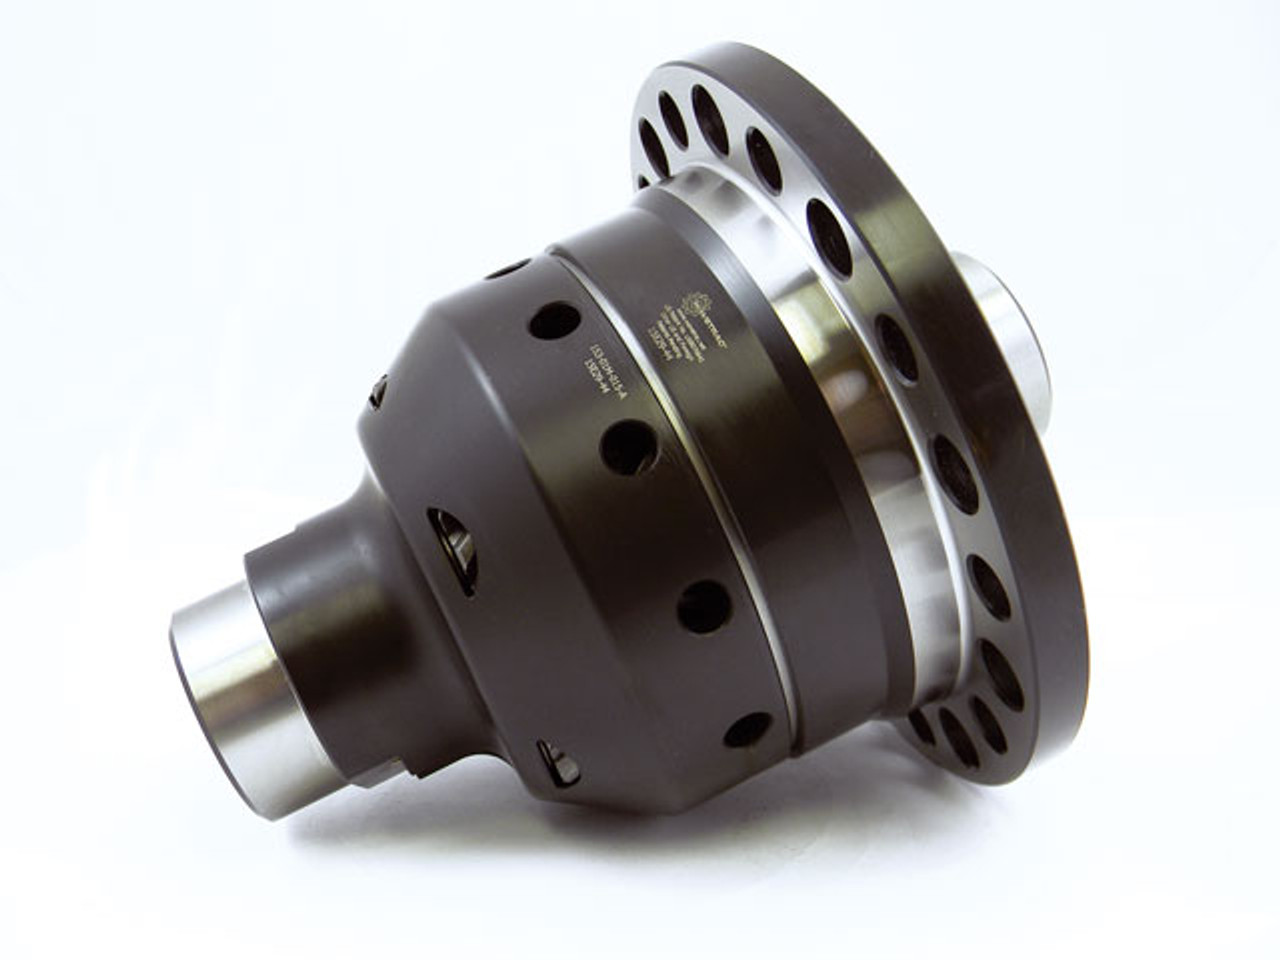 BMW 335D Limited Slip Differential by Wavetrac - differential